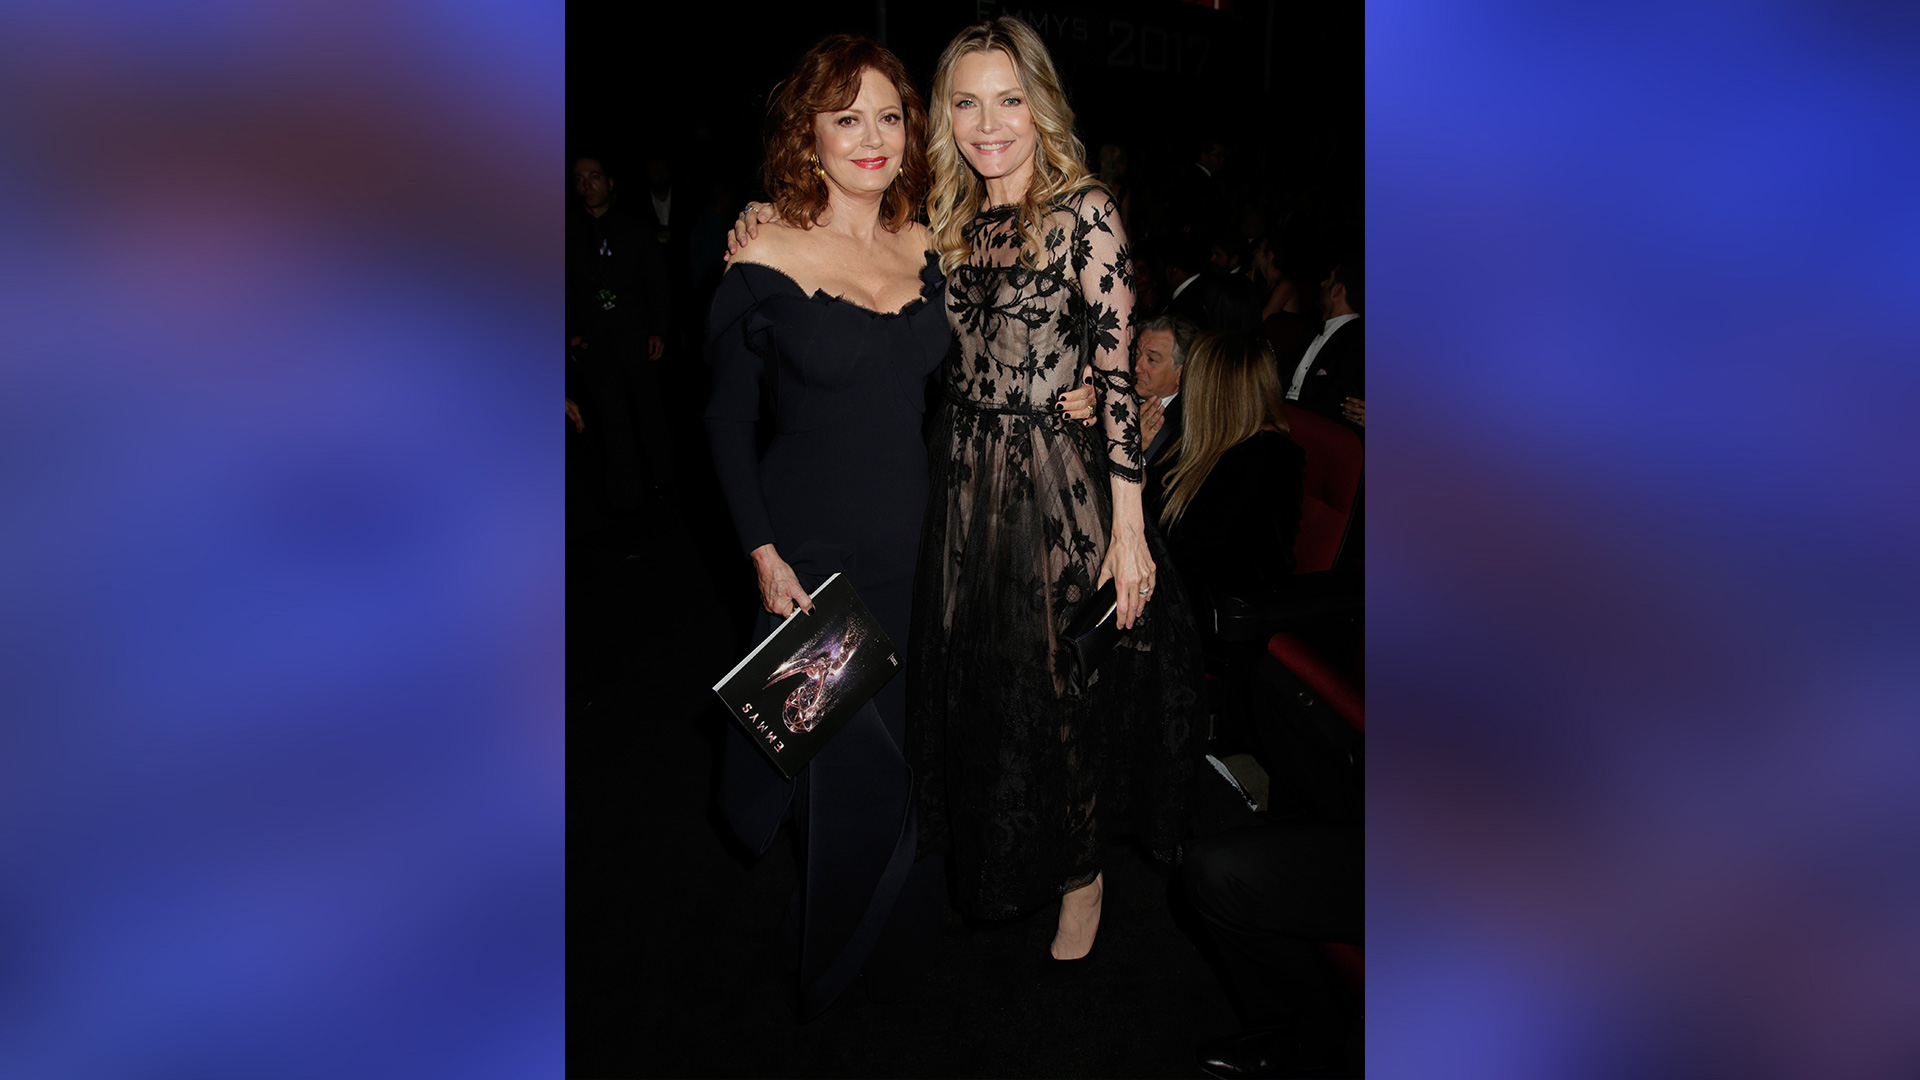 Susan Sarandon and Michelle Pfeiffer catch up at the Emmys while donning their best black dresses.